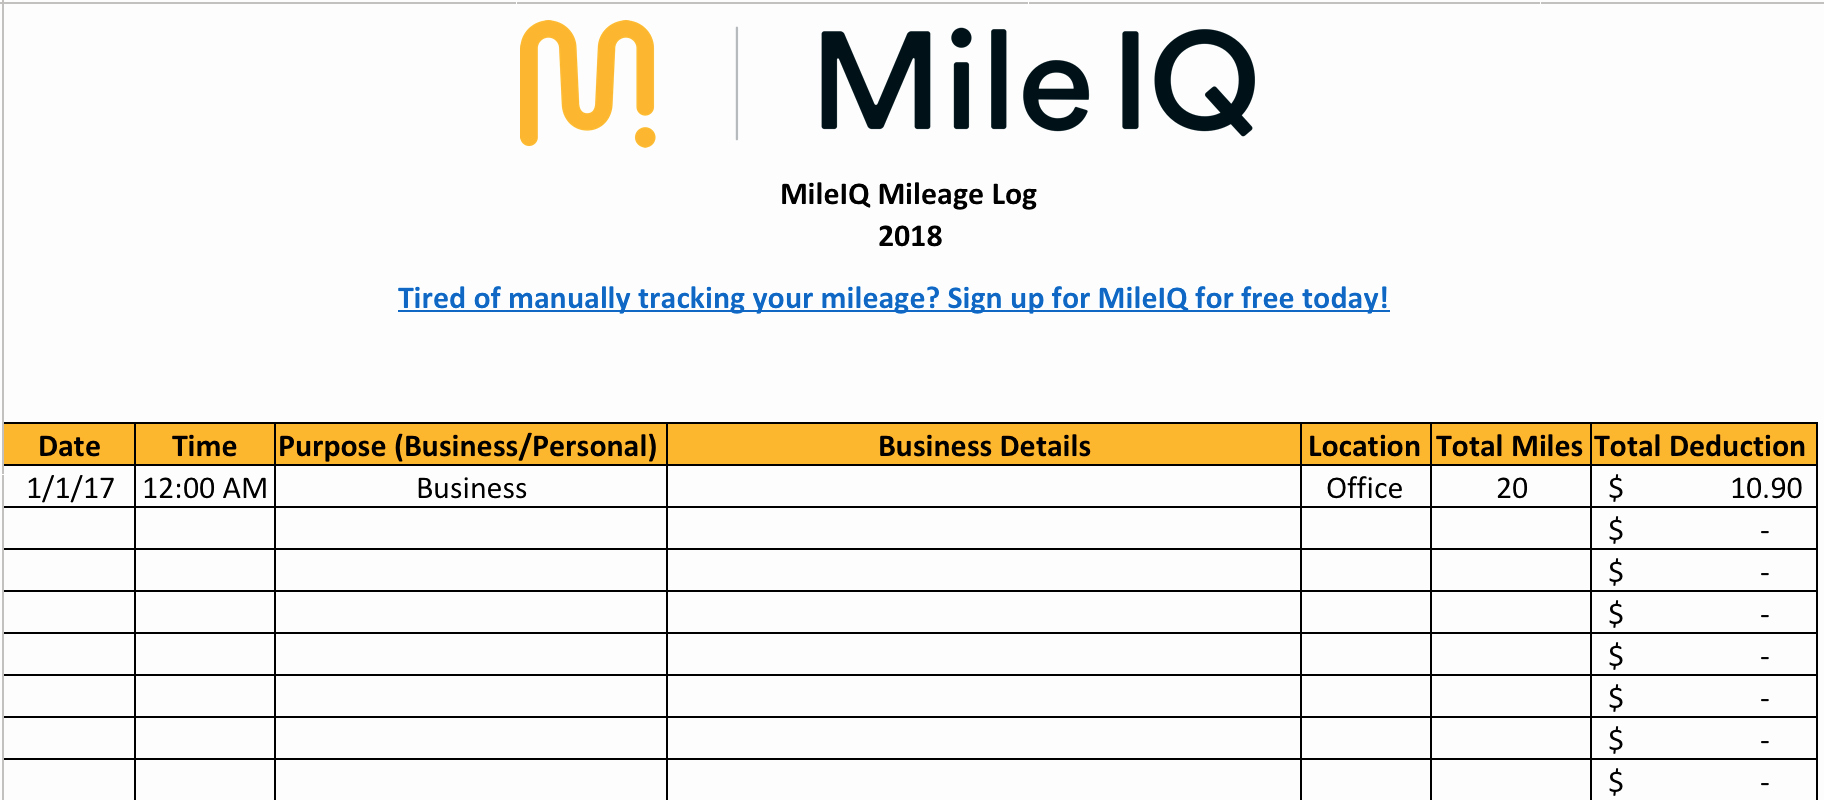 Irs Mileage Log Template Luxury Free Mileage Log Template for Taxes Track Business Miles